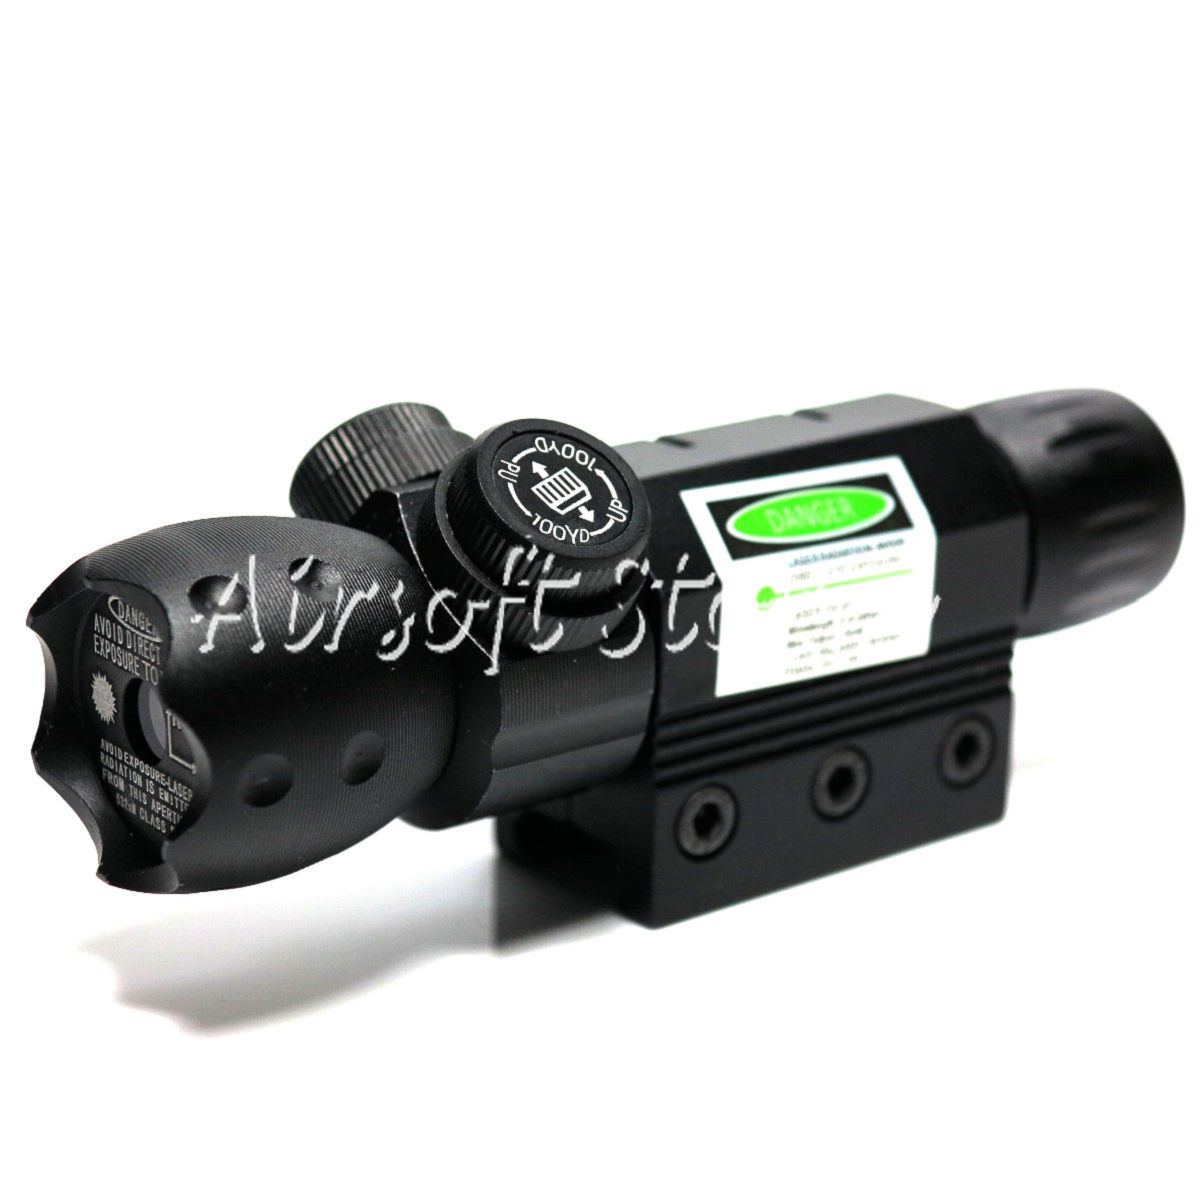 LXGD Tactical Gear Rifle AEG Green Laser Tactical Head Sight Pointer JG-020